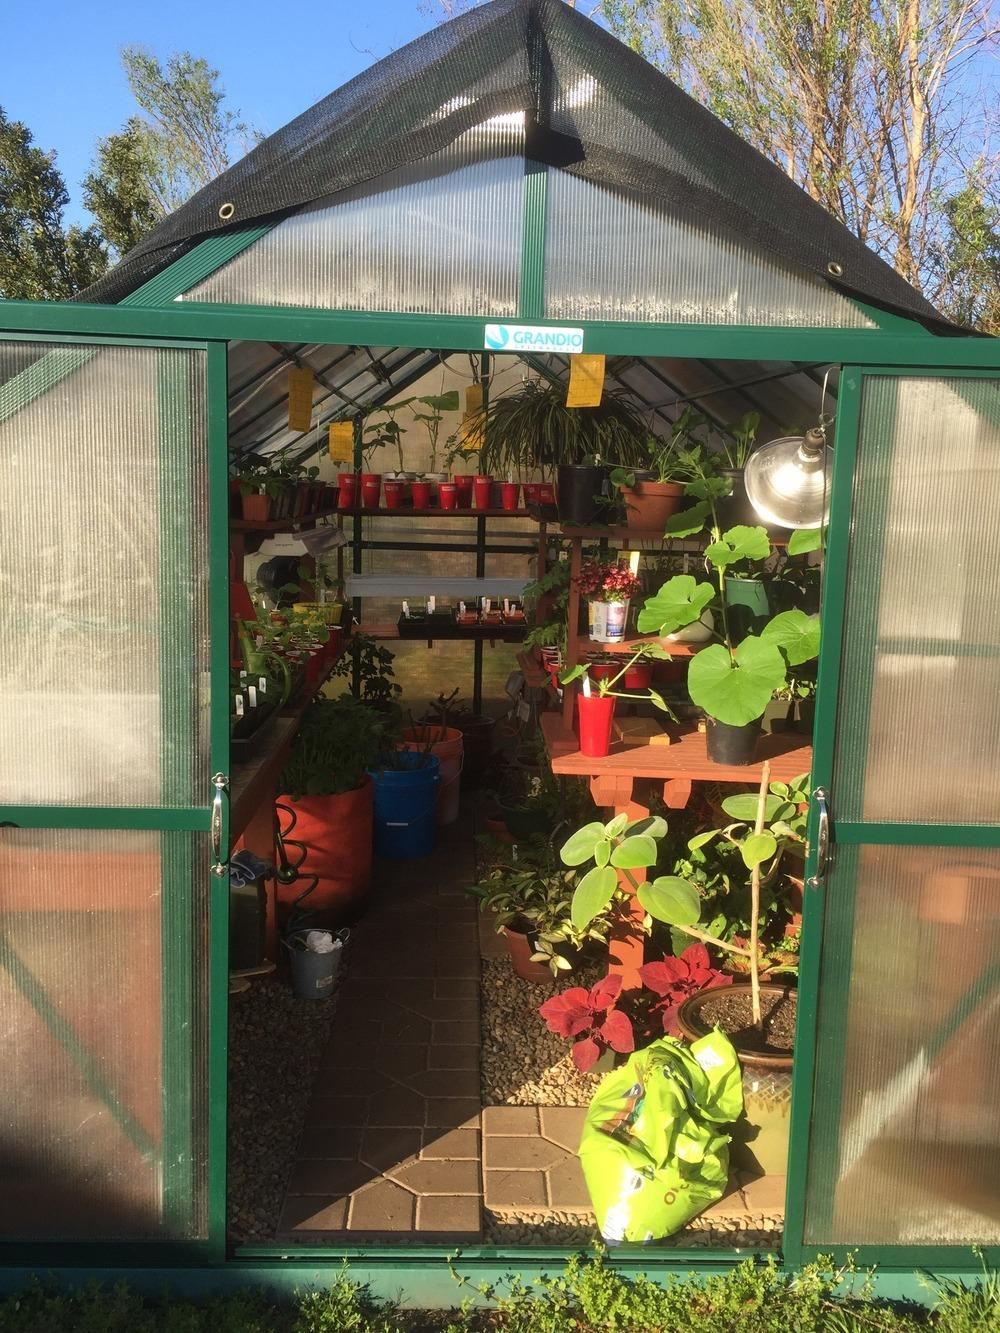 Greenhouses forum: My Greenhouse - Charleston - Garden.org